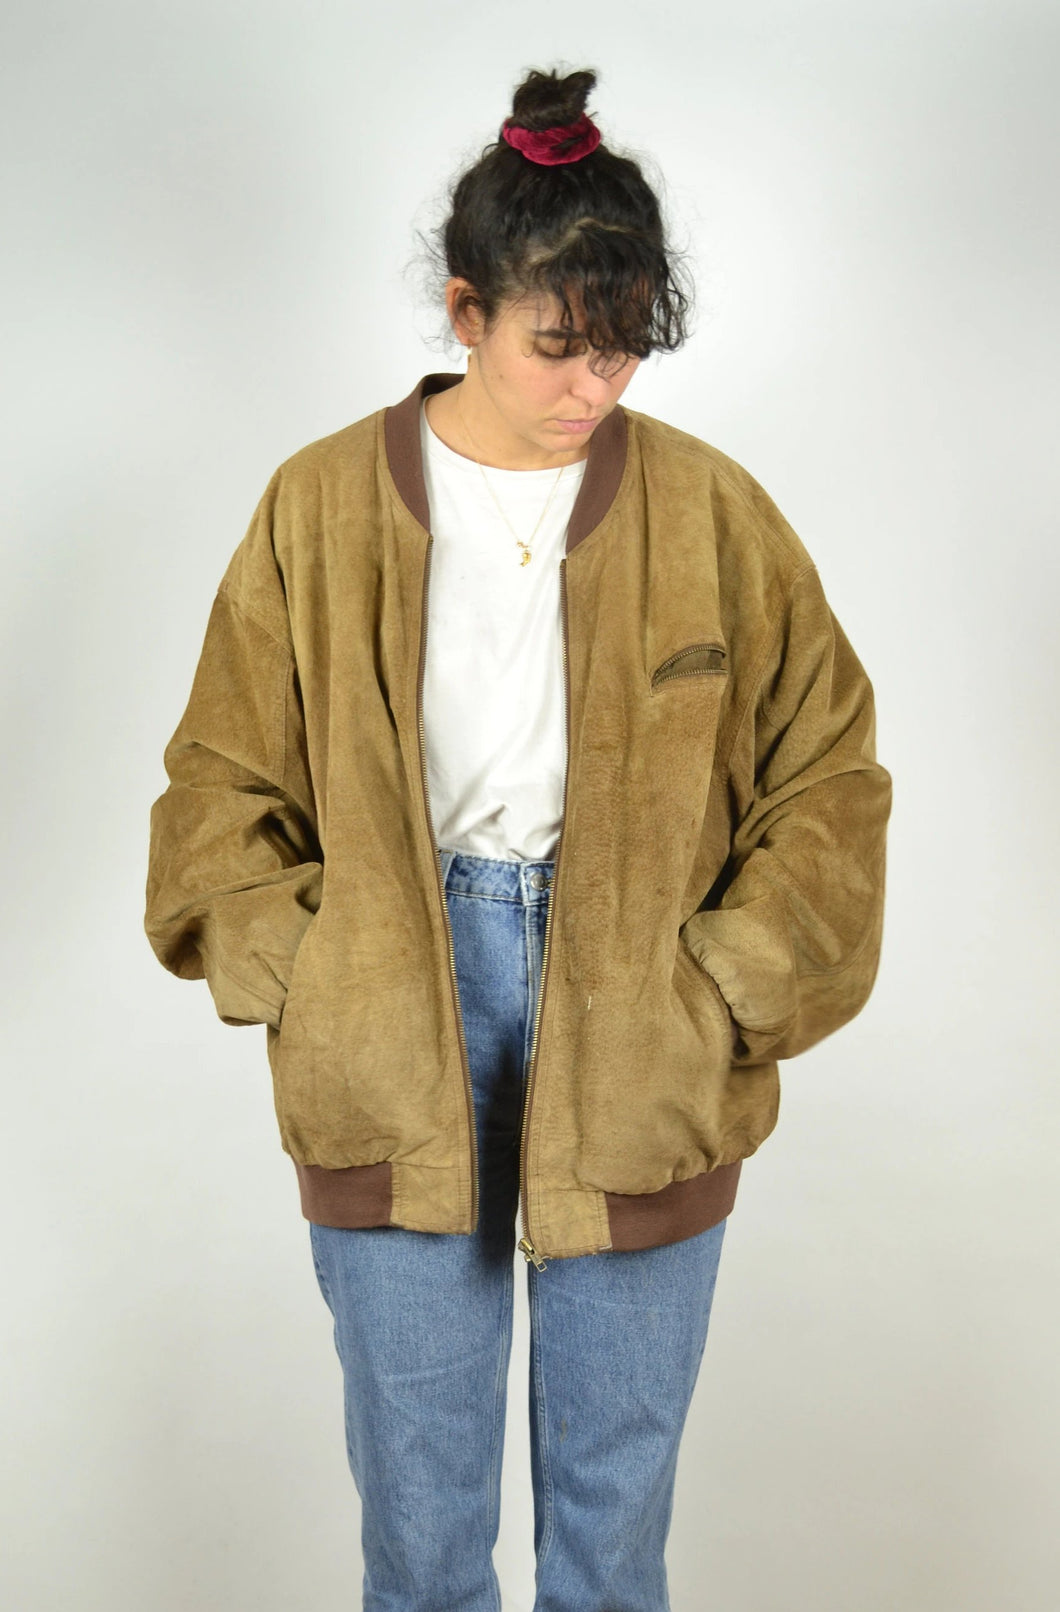 Brown Leather Suede Bomber Jacket Vintage 80s Oversized XL